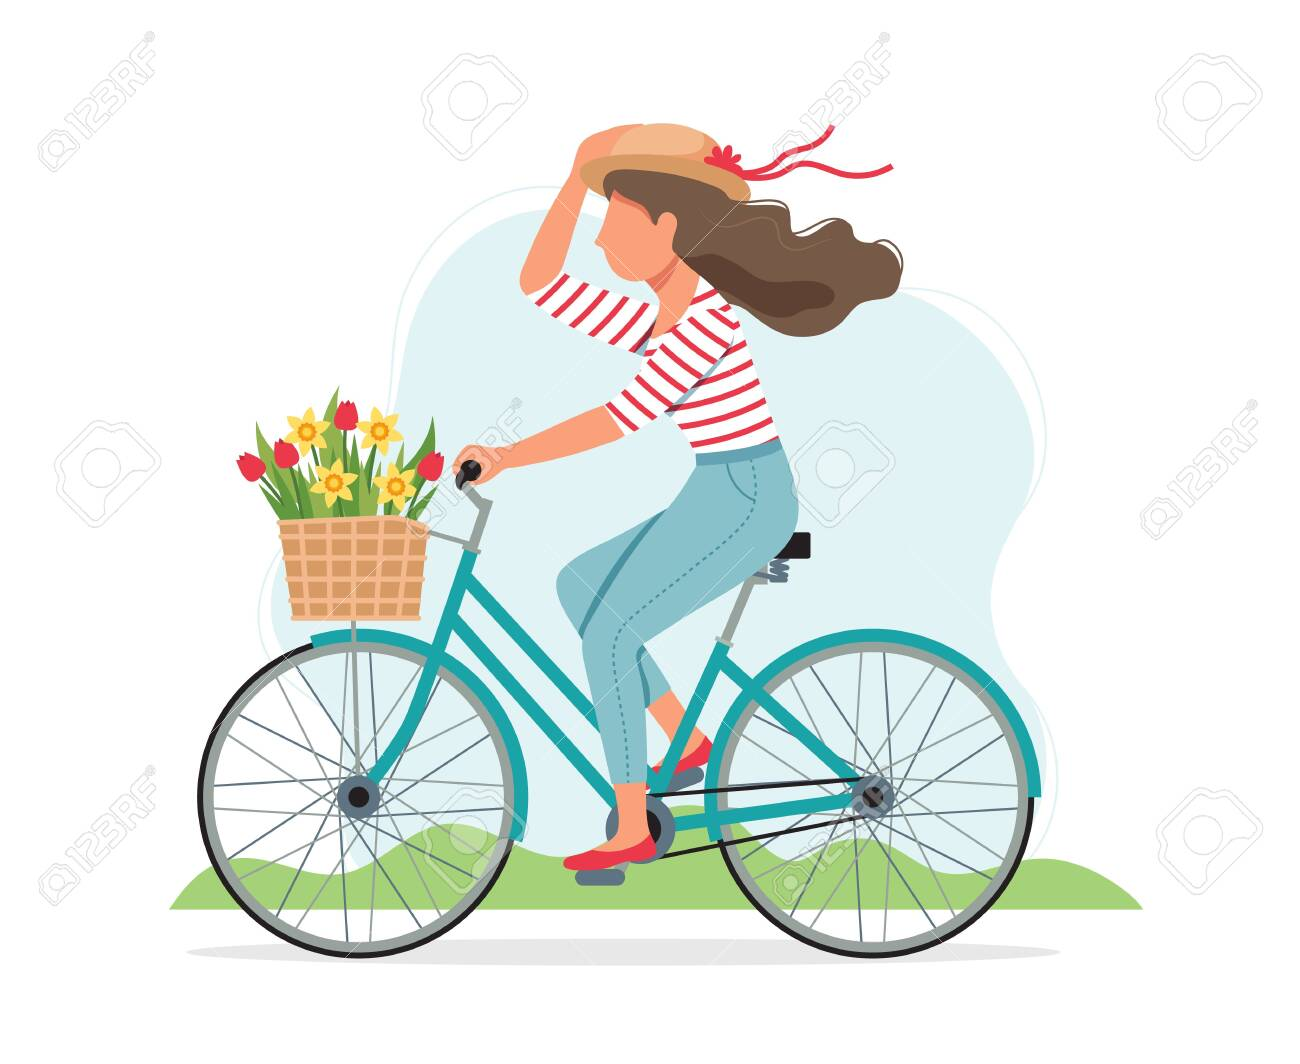 Woman riding a bike in spring with flowers in the basket. Cute vector illustration in flat style - 139128362